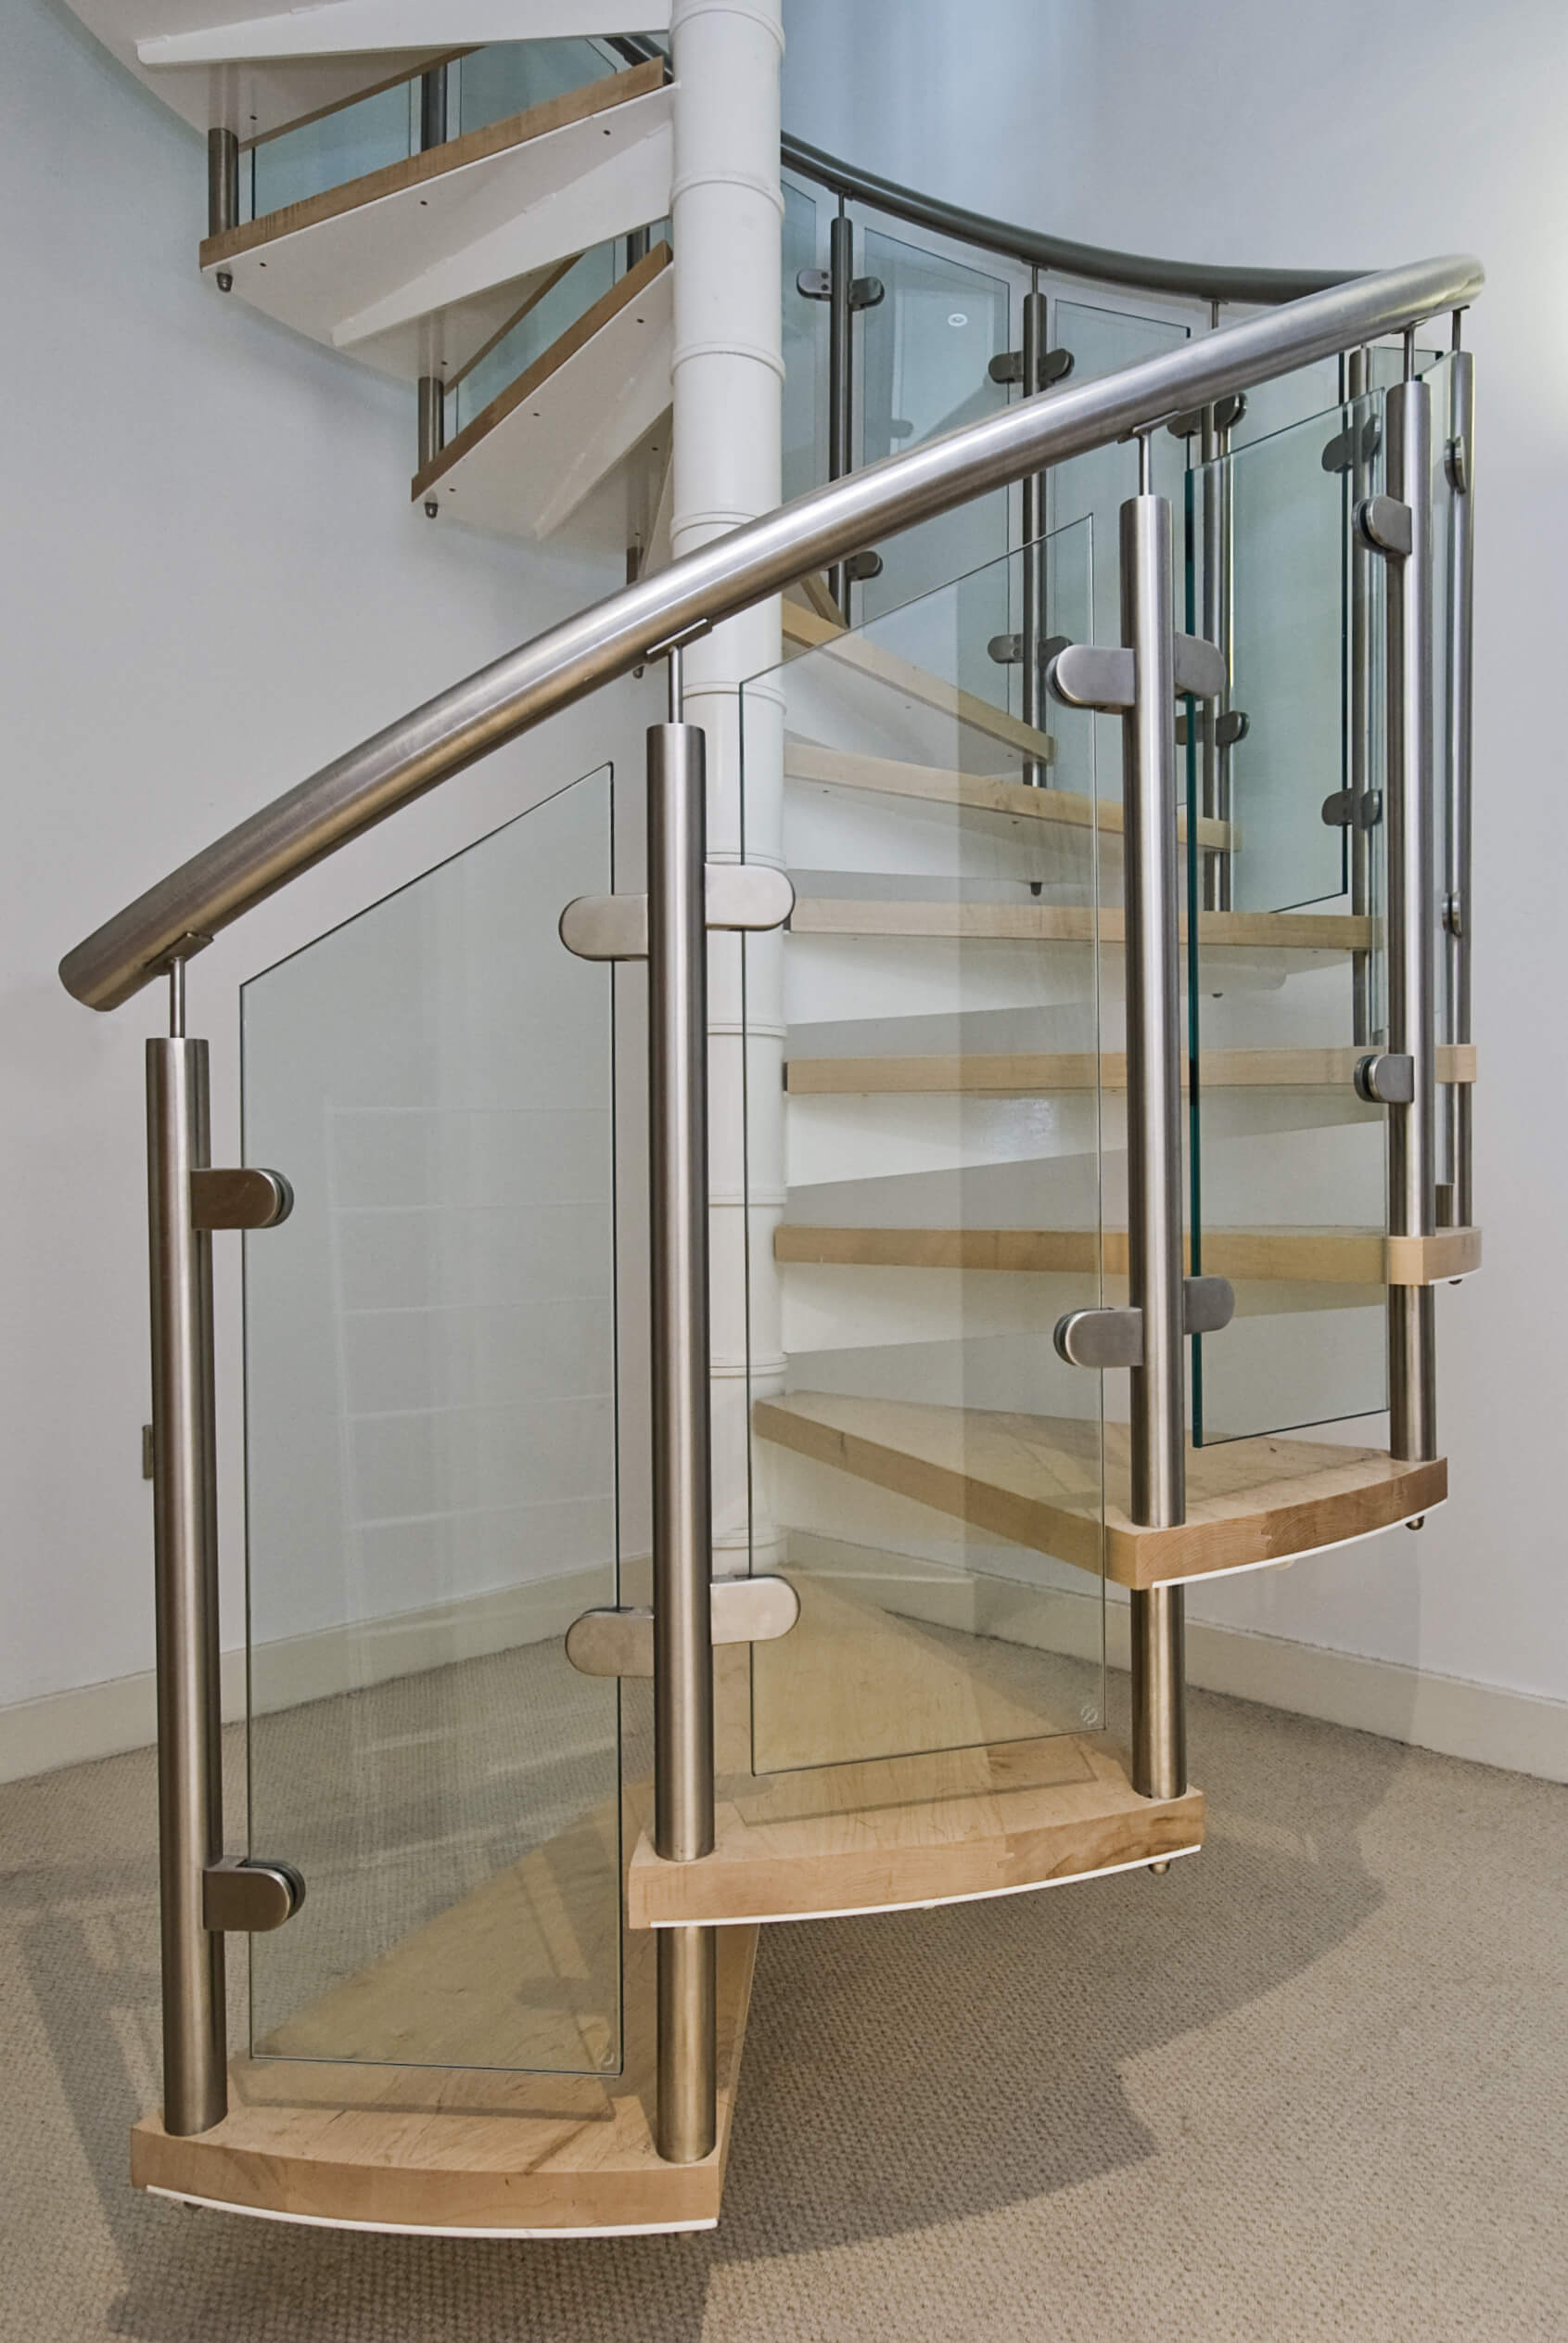 Close up of modern spiral staircase with wooden steps with open risers.  Glass and steel make up the baluster.